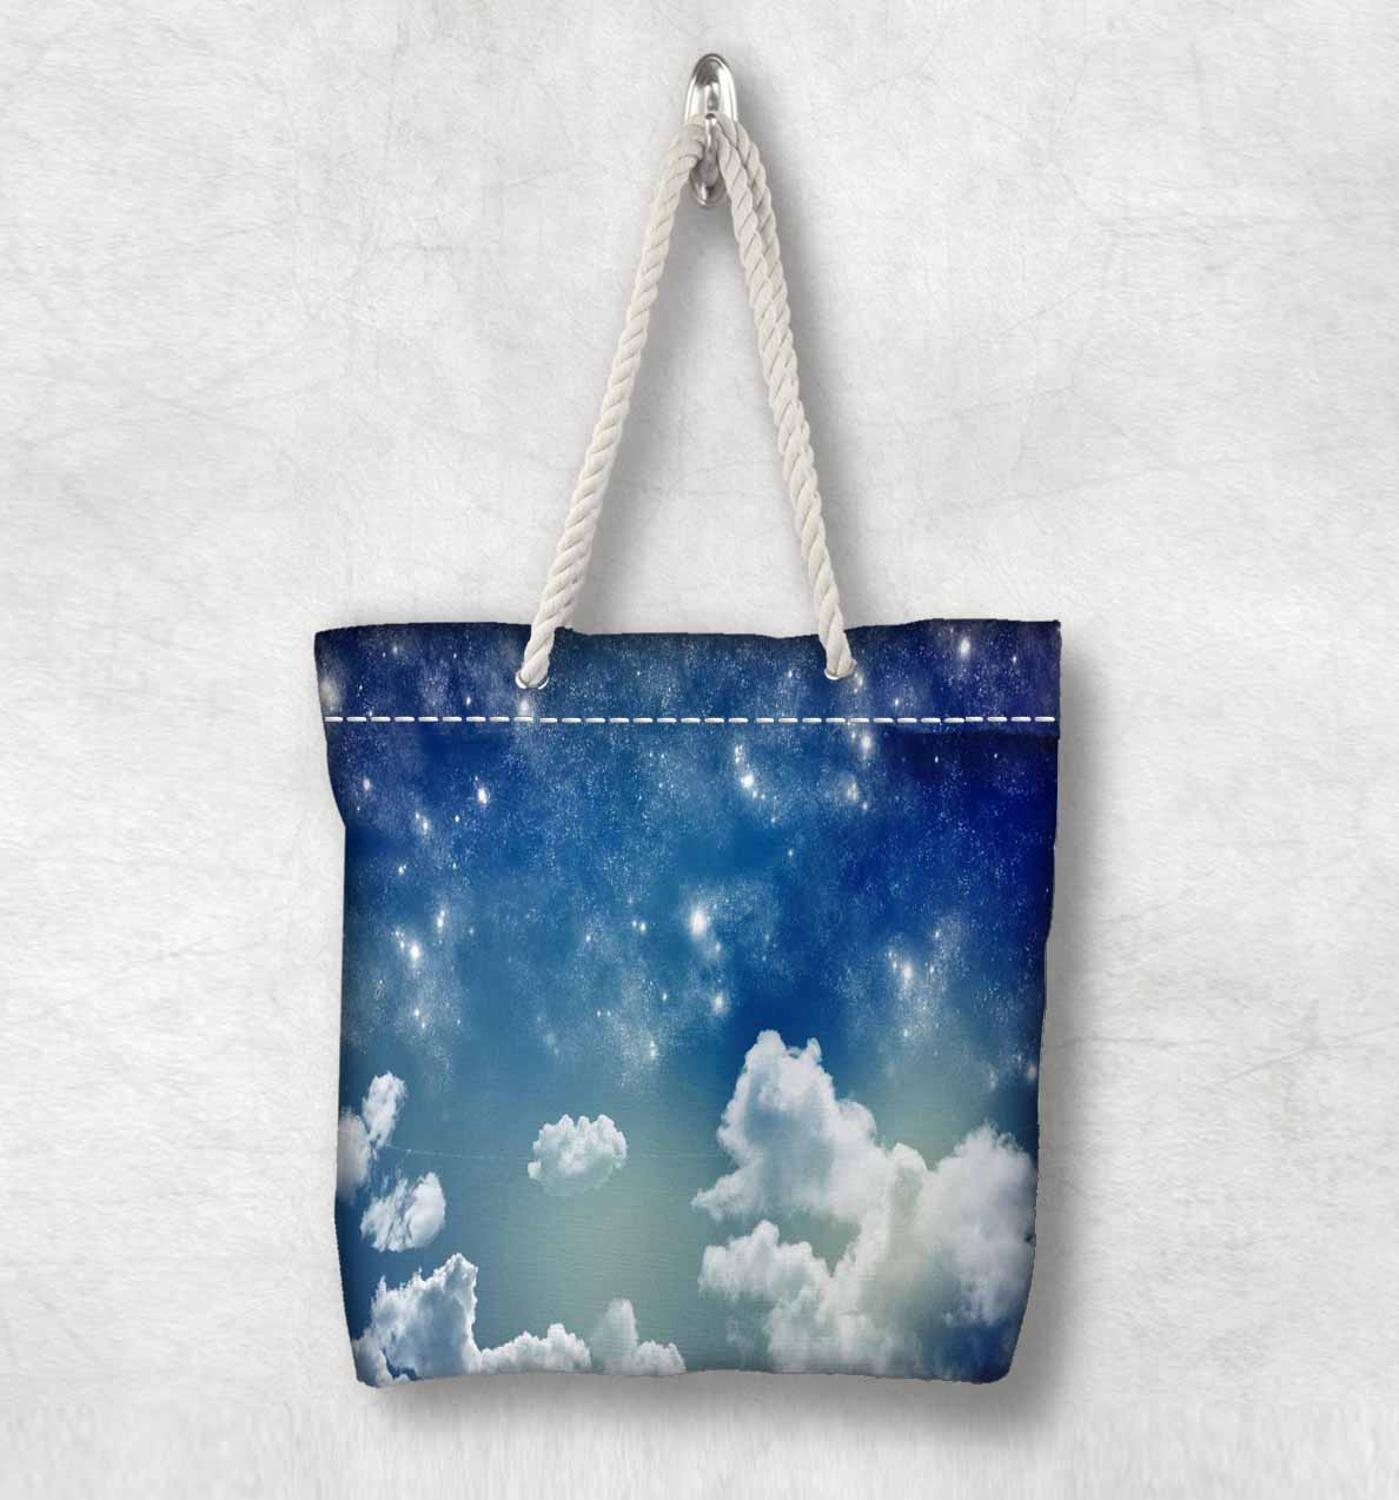 Else Blue Sky Night White Clouds New Fashion White Rope Handle Canvas Bag Cotton Canvas Zippered Tote Bag Shoulder Bag